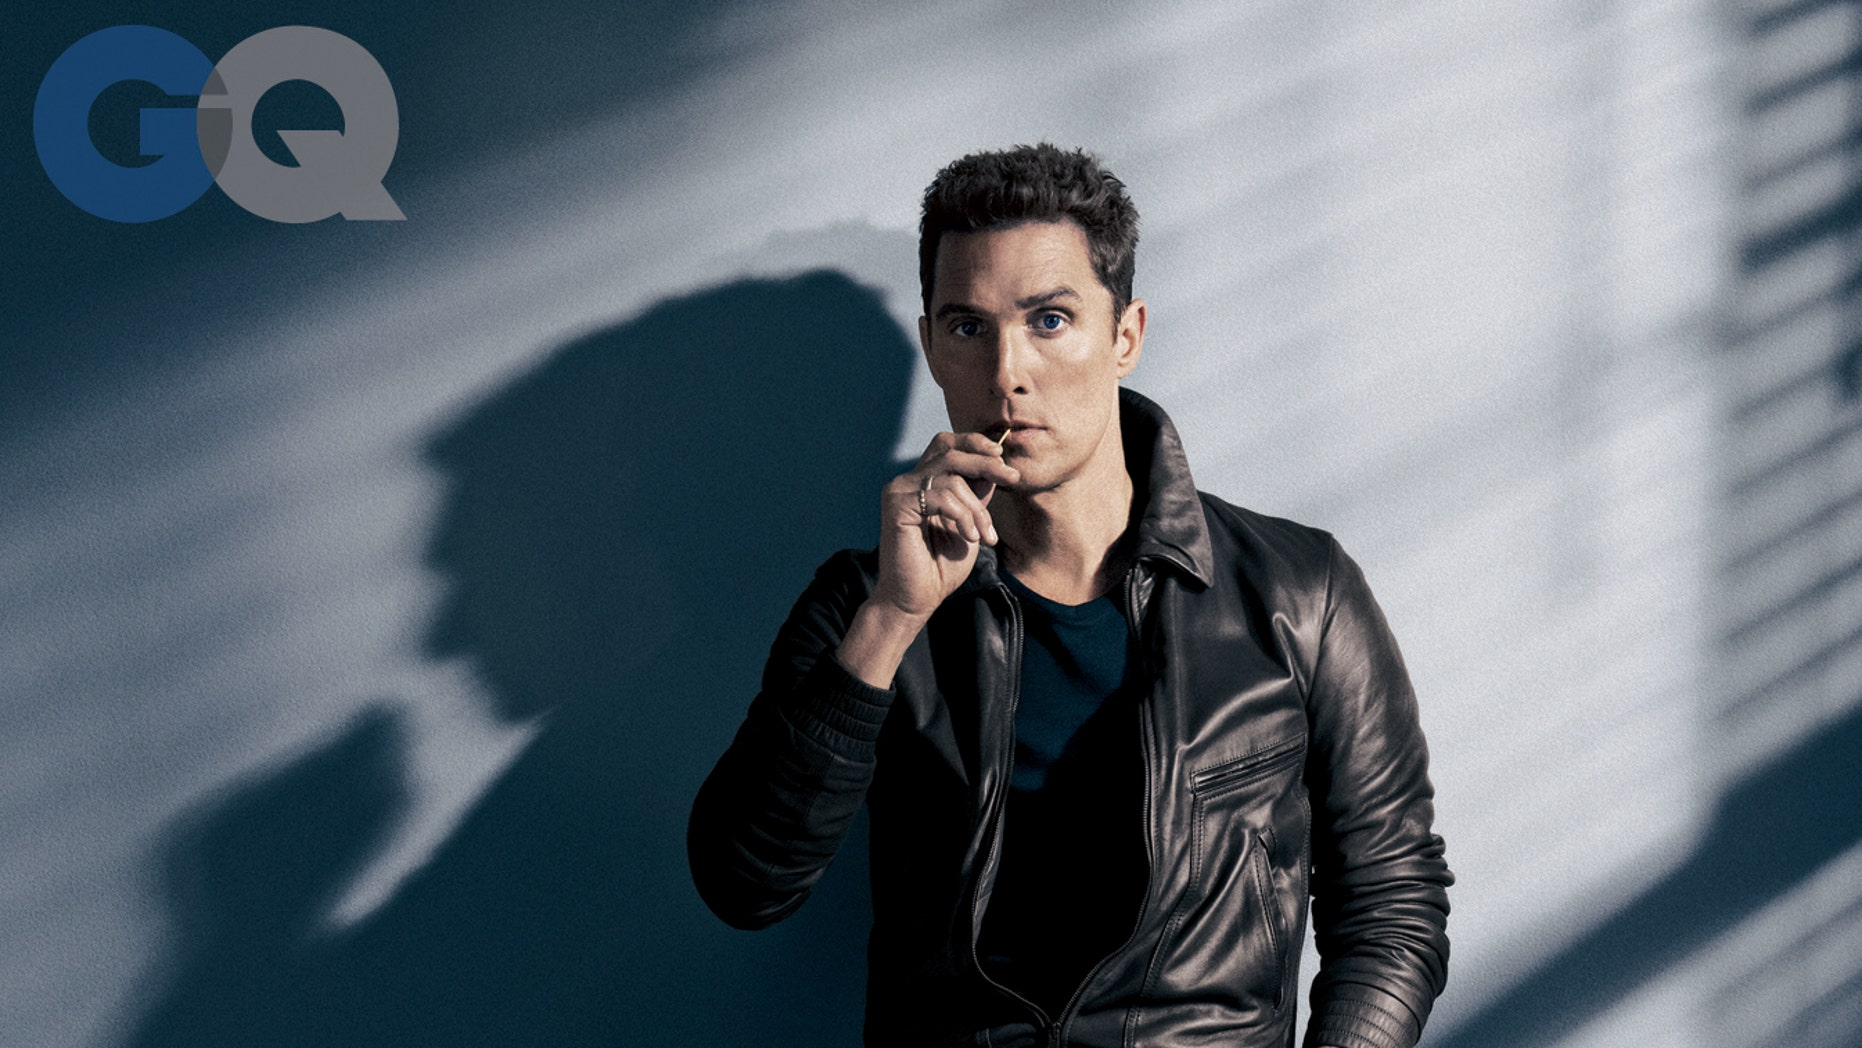 Matthew McConaughey poses for GQ magazine.